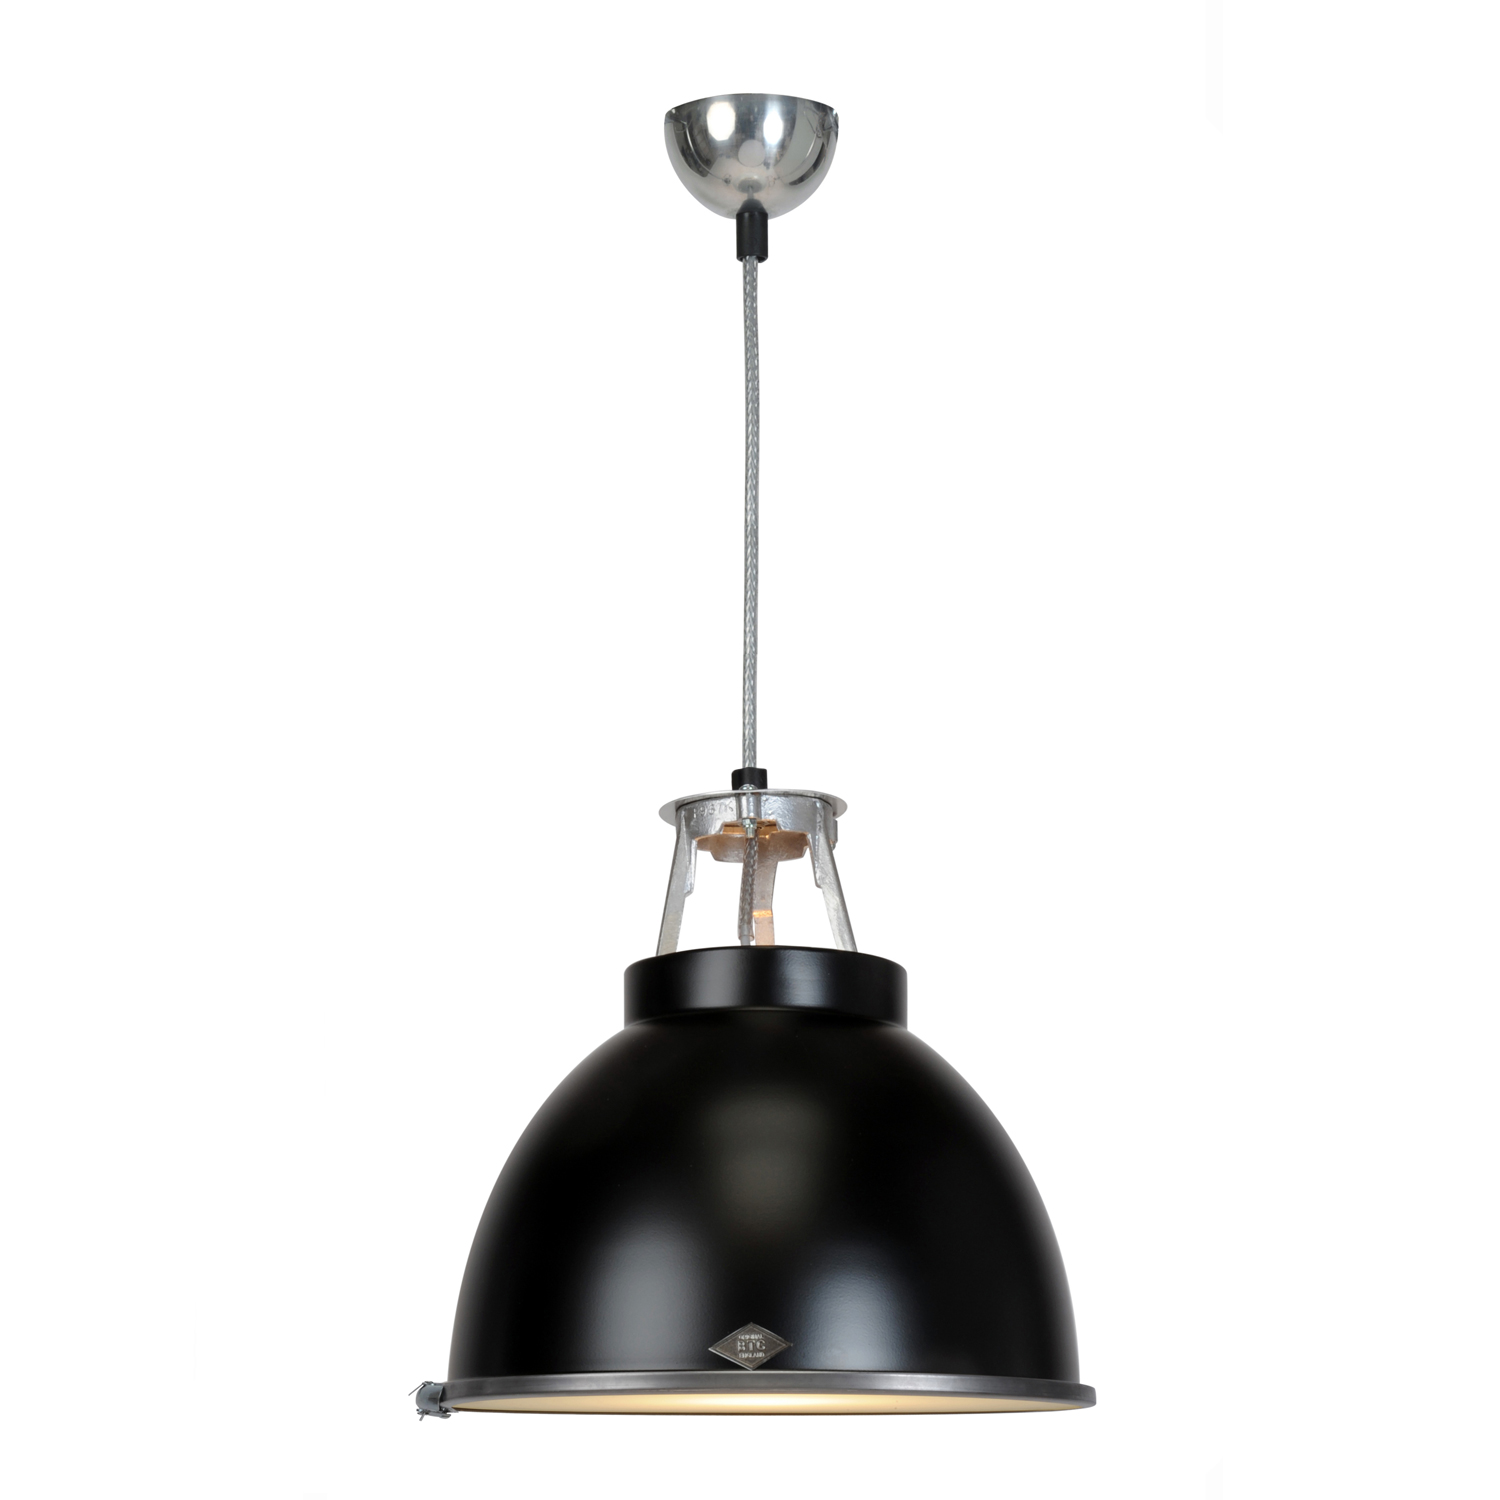 Titan Size 1 Pendant Light, Black with Etched Glass